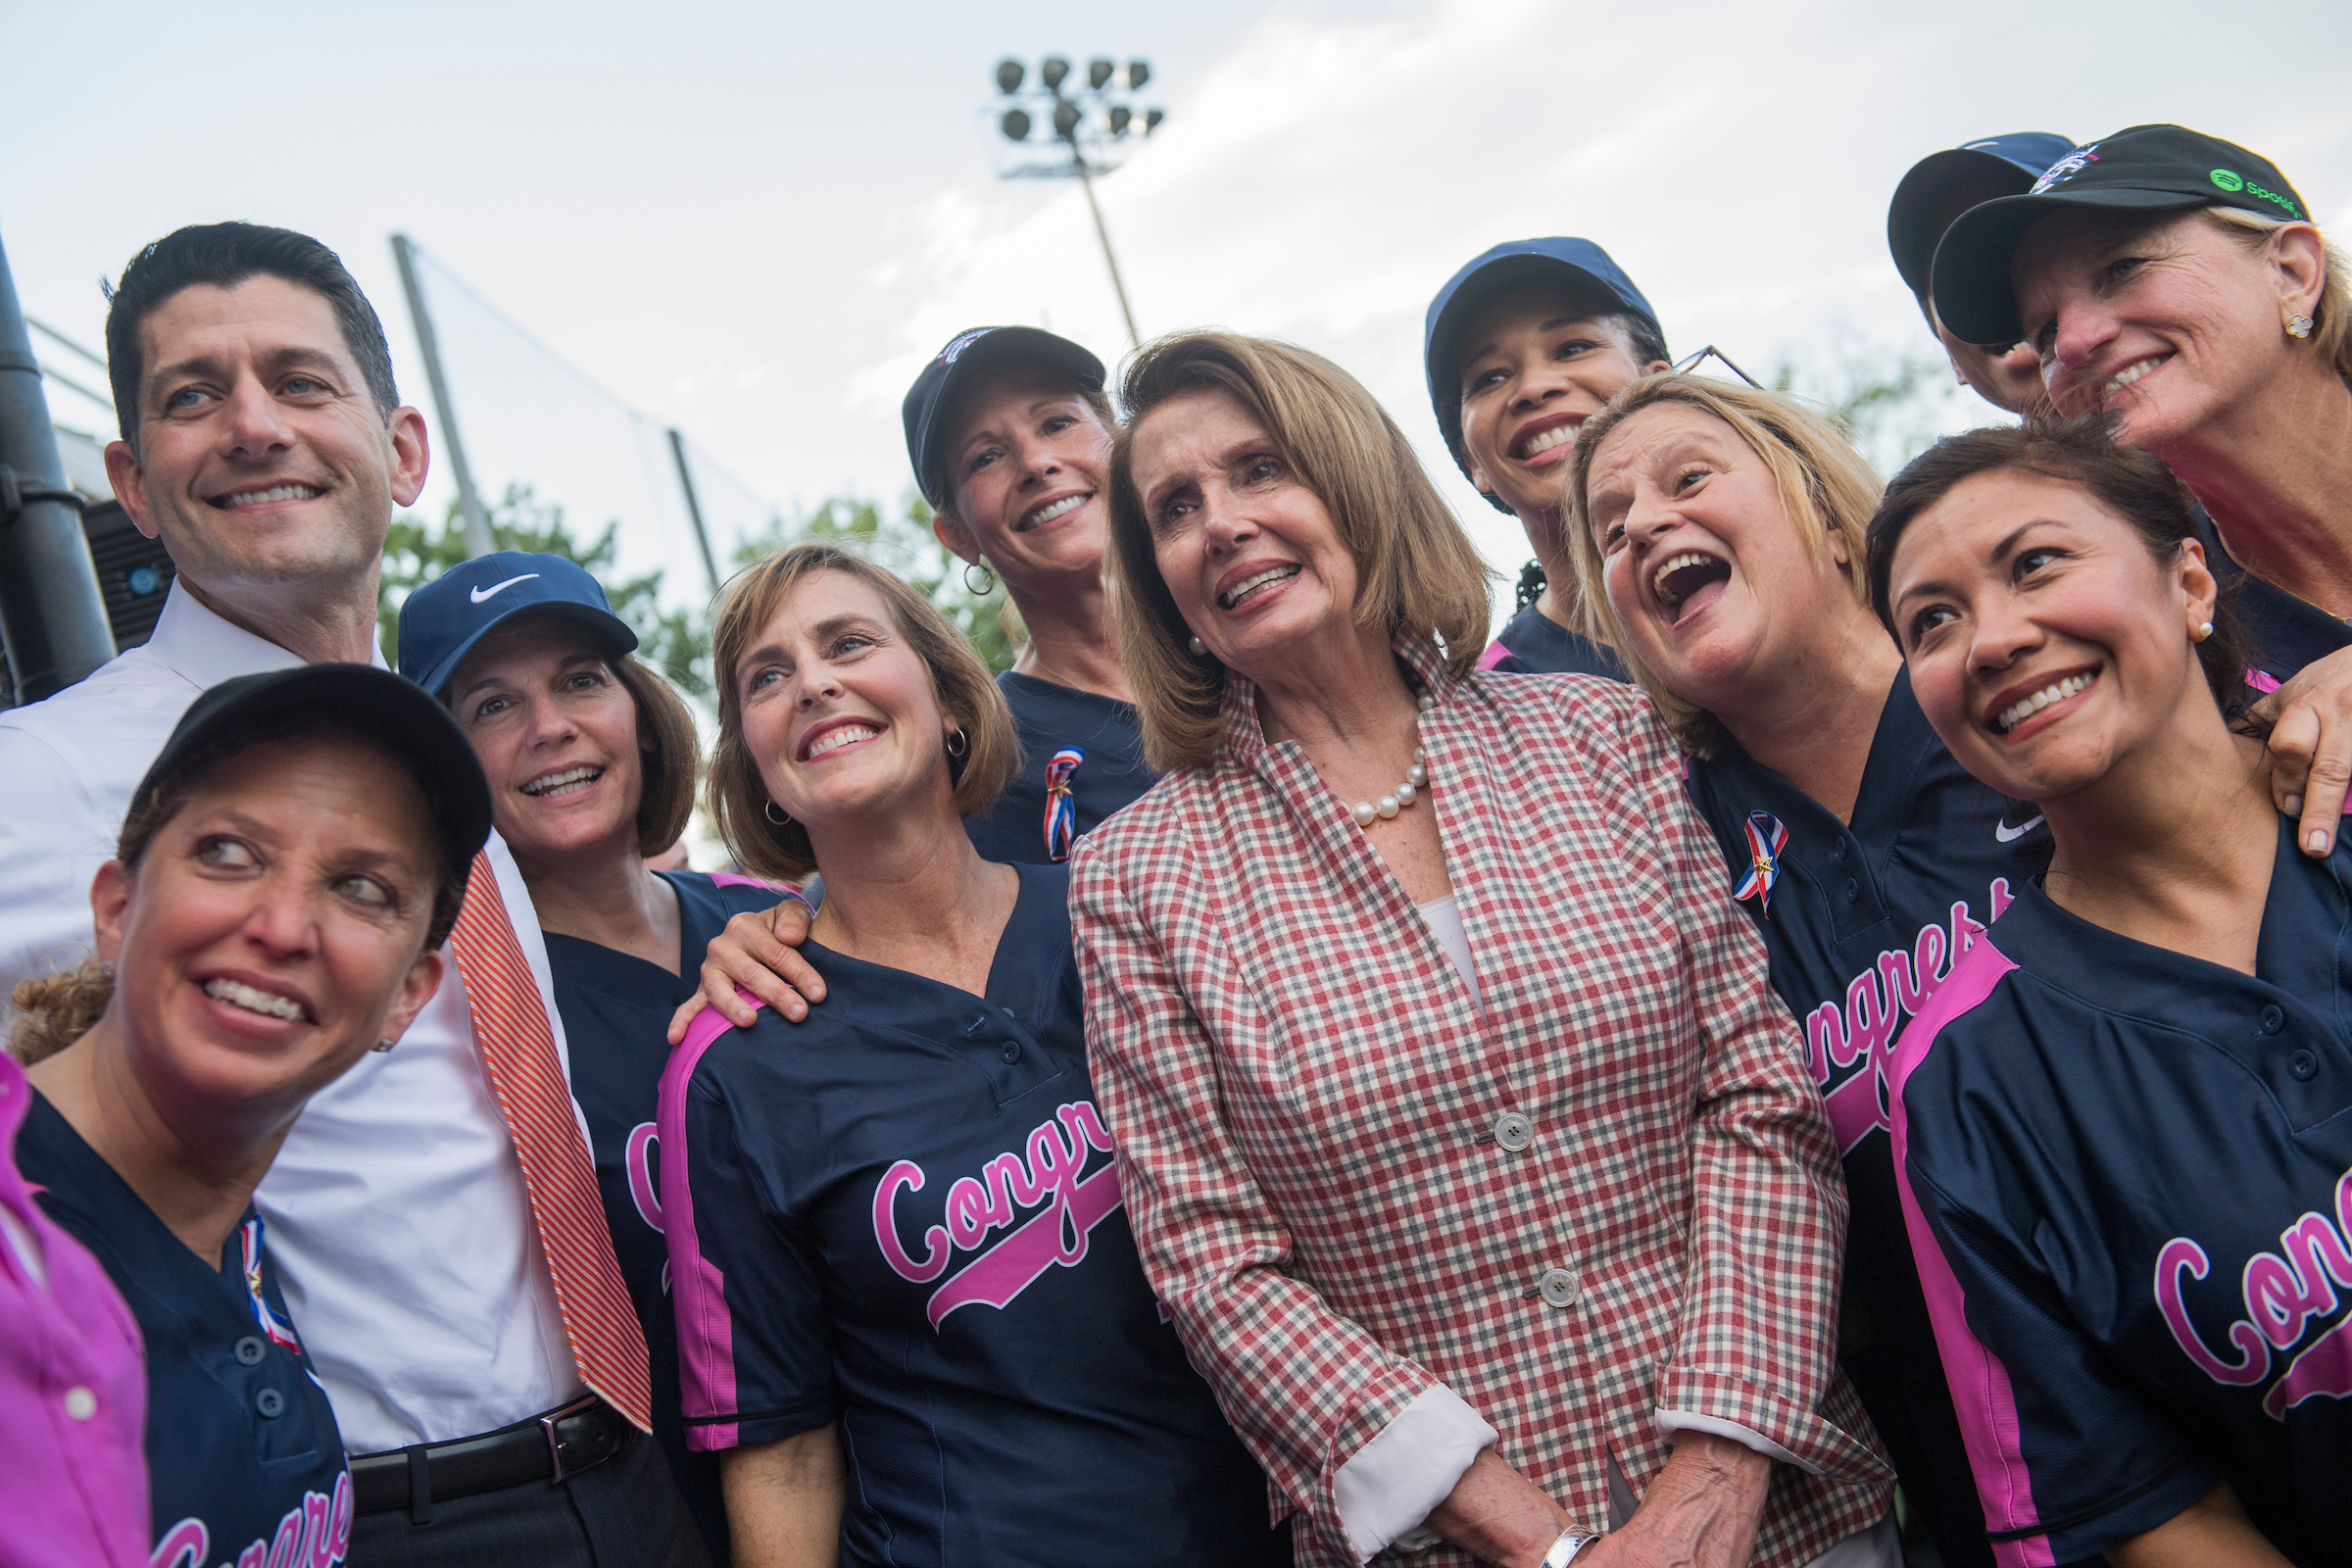 UNITED STATES - JUNE 21: Speaker of the House Paul Ryan, R-Wis., and House Minority Leader Nancy Pelosi, D-Calif., pose with the members team before the Congressional Women's Softball game that pits Congresswomen against female journalists at Watkins Recreation Center on Capitol Hill, June 21, 2017. The game benefits the Young Survival Coalition that helps young women with breast cancer. The press team prevailed 2-1. (Photo By Tom Williams/CQ Roll Call)